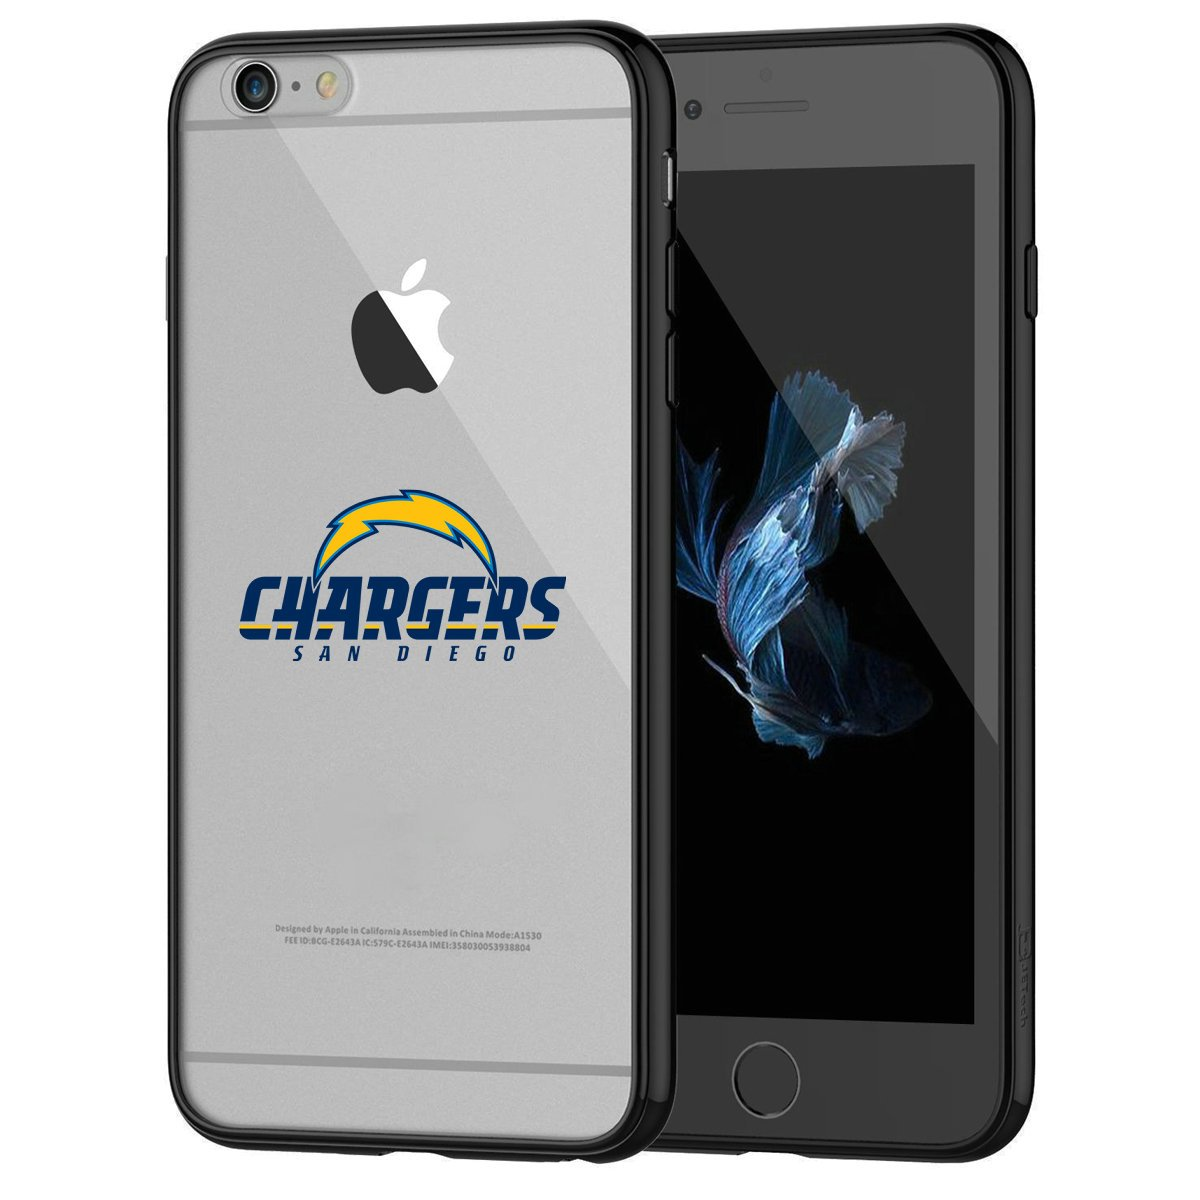 iPhone 6s Tough Case, Shock Absorption TPU + Translucent Frosted Anti-Scratch Hard Backplate Back Cover for iPhone 6 / 6s - Black 49ers iPhone 6s Tough Case DesignerCases